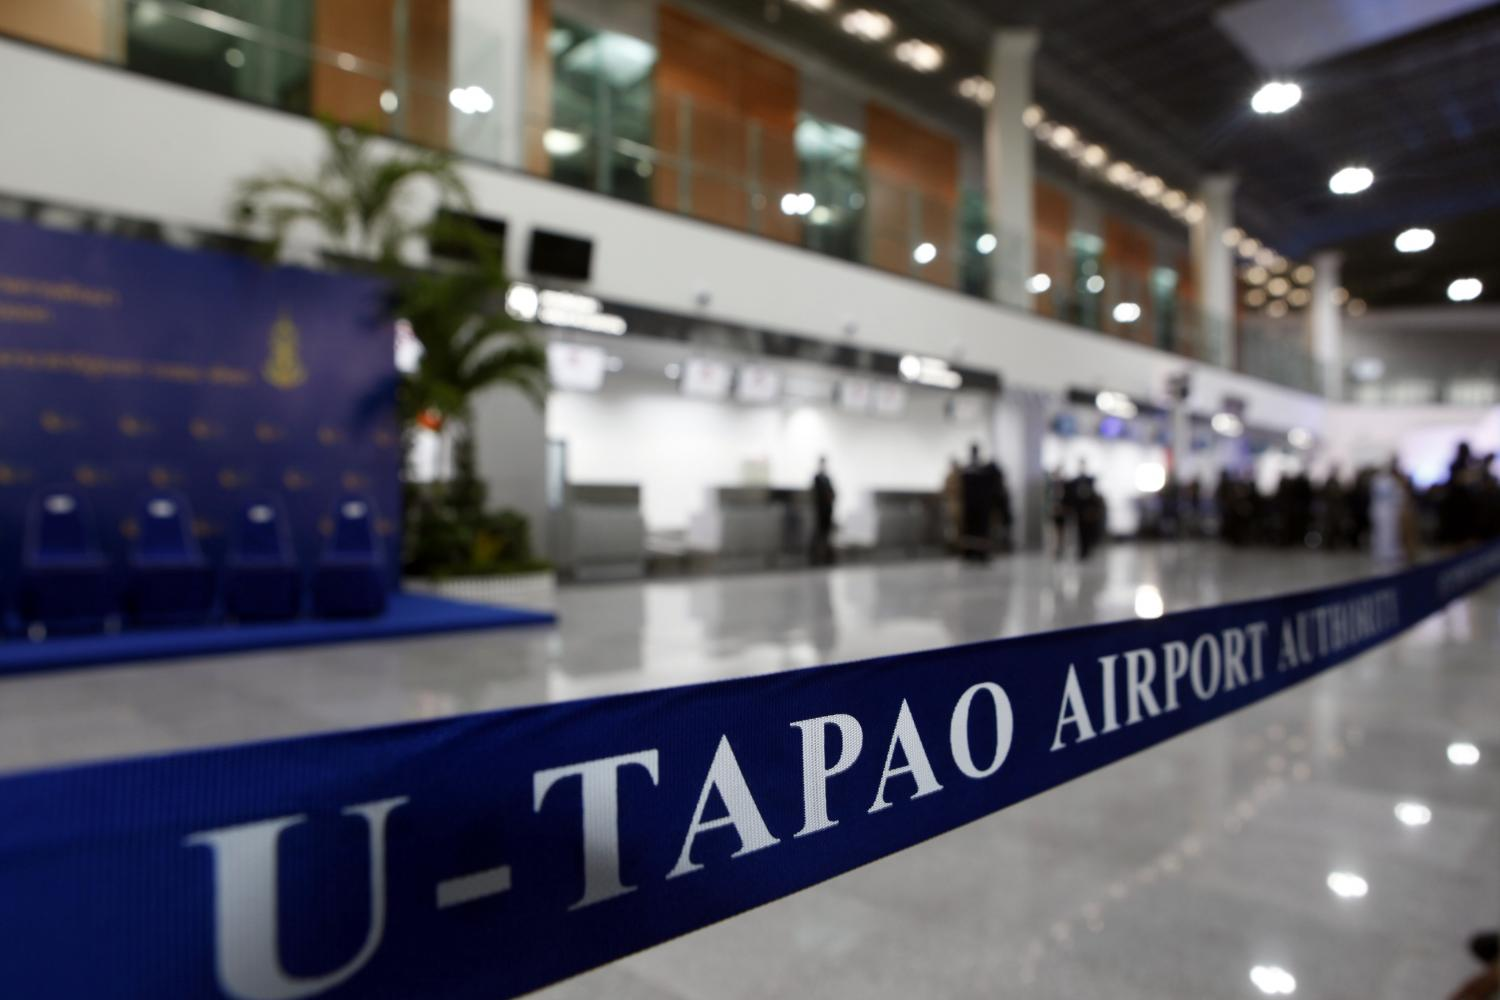 Transforming U-tapao airport into an aviation hub is among the projects supported under the 20-year national strategy plan. (Photo by Apichart Jinakul)